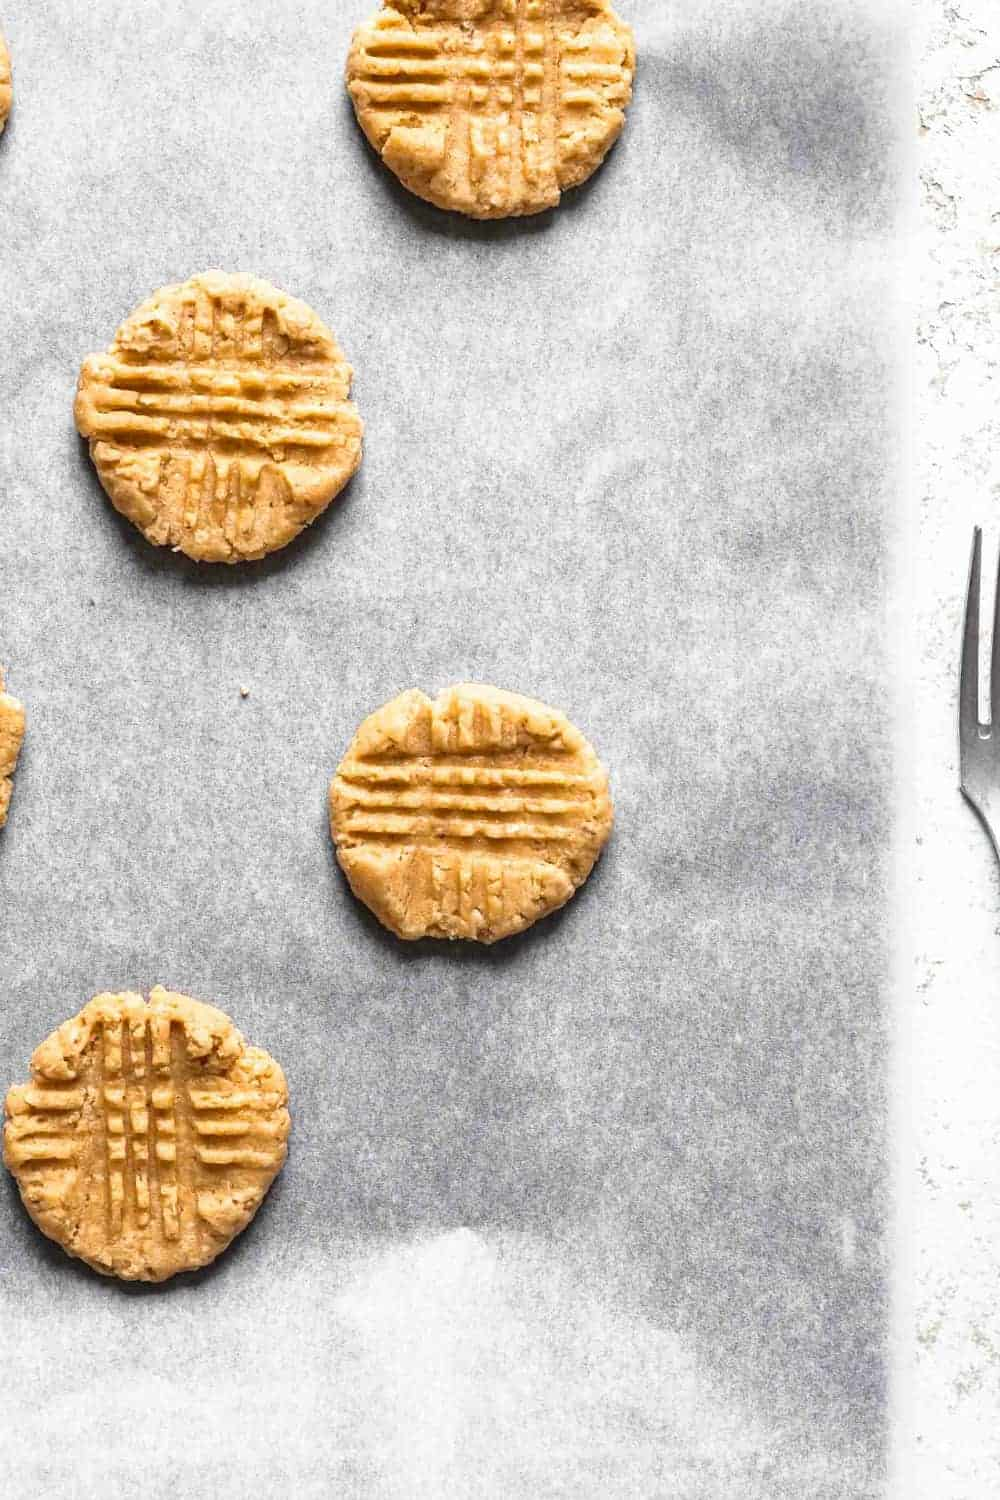 Unbaked peanut butter cookies on a parchment-lined baking sheet